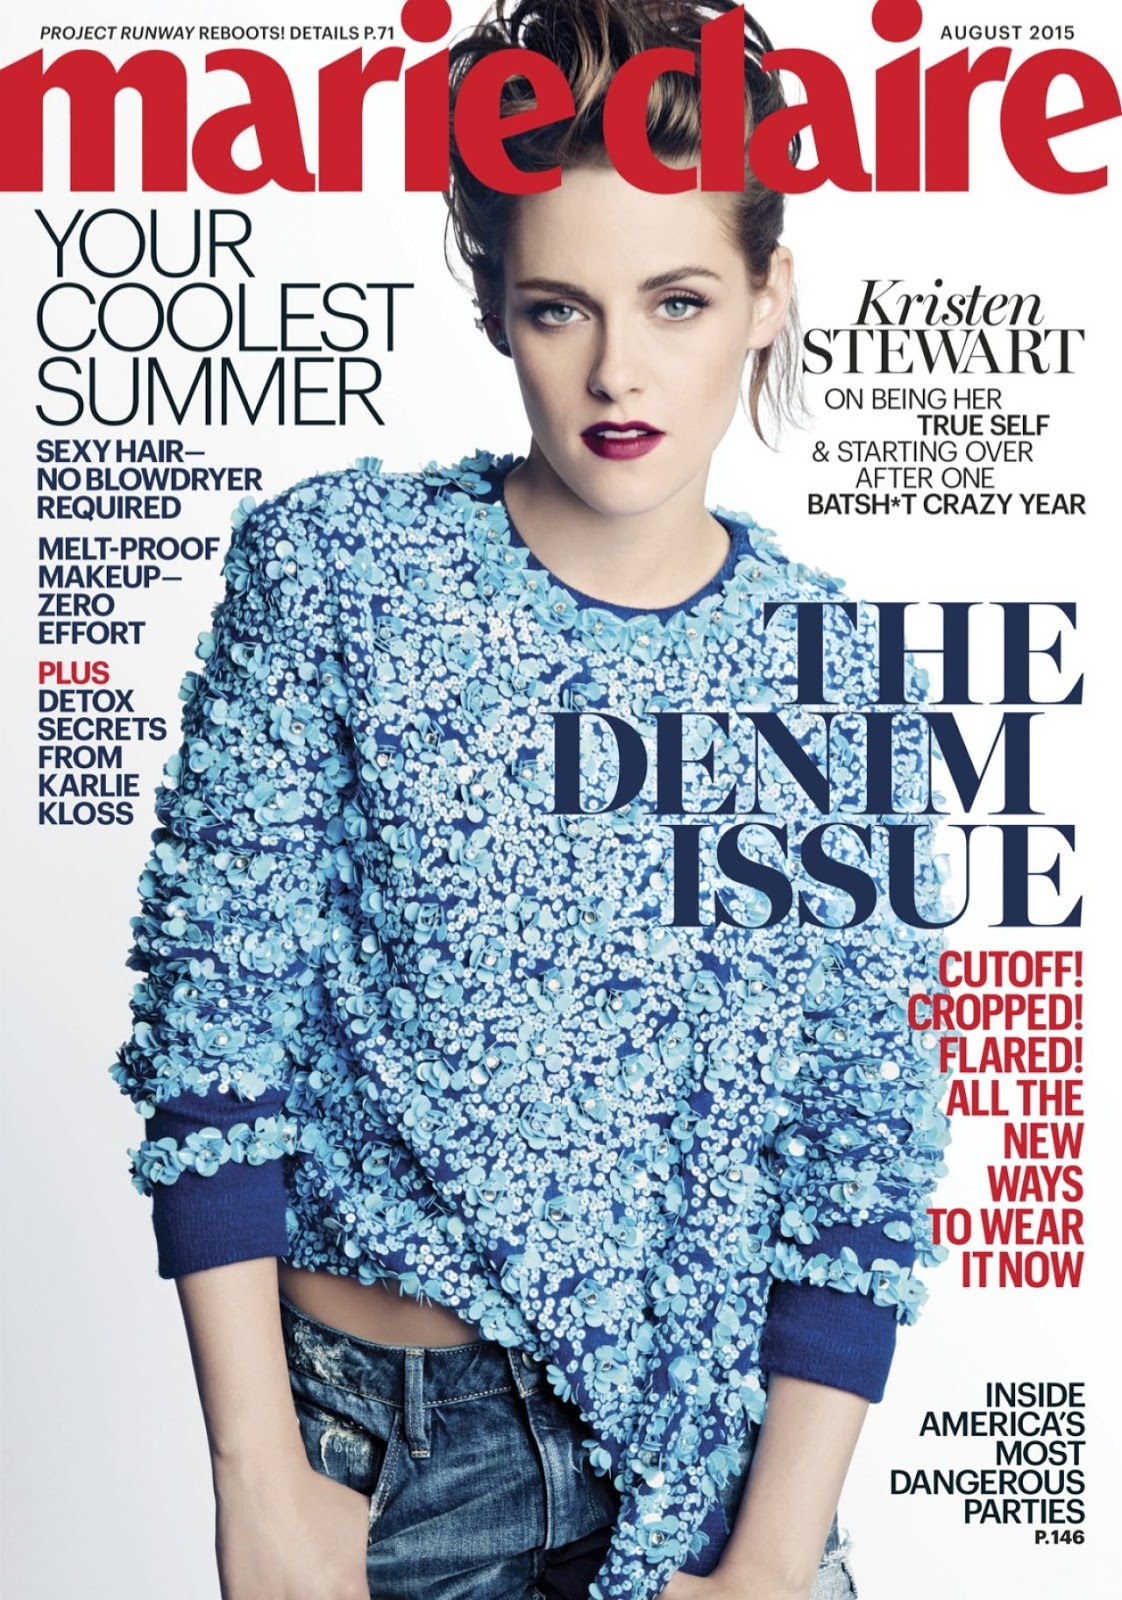 Kristen Stewart is bold and glamorous for Marie Claire US August 2015